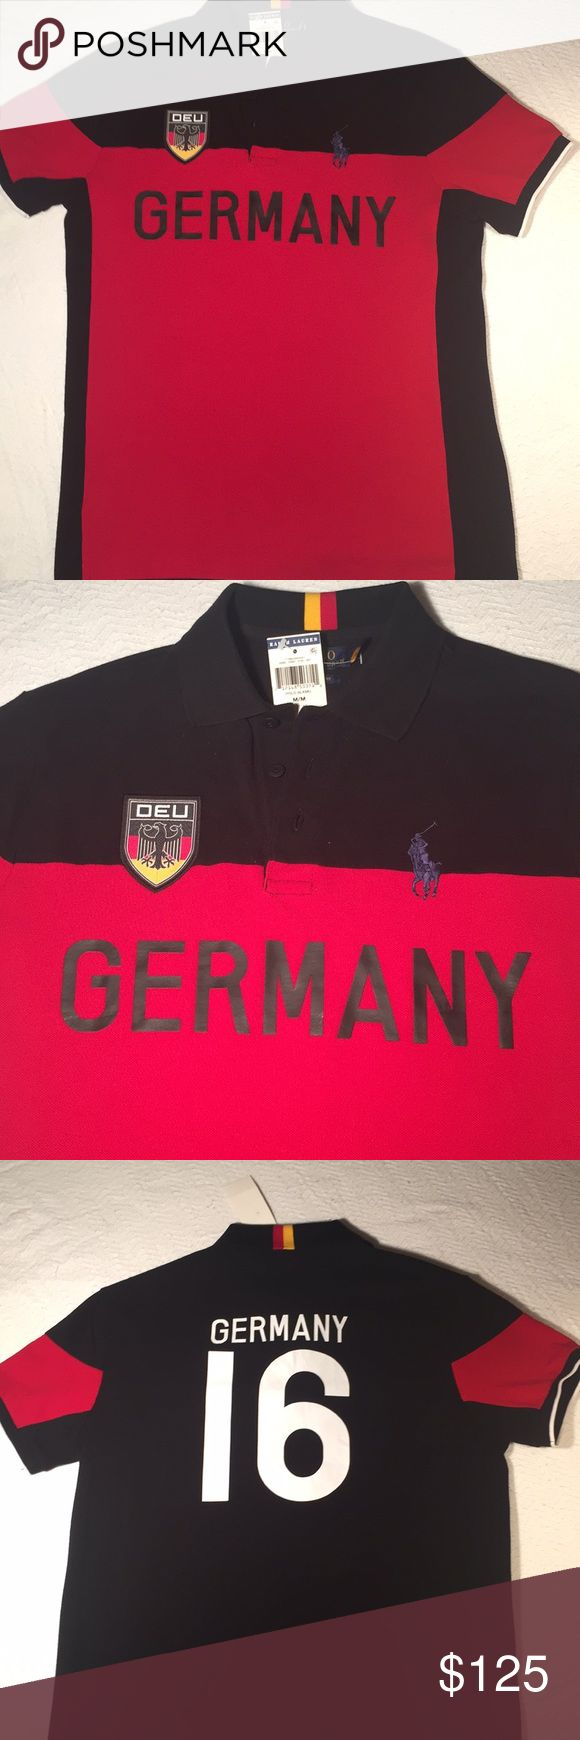 FINAL PRICE 💴POLO RALPH LAUREN COUNTRY COLLECTION MENS AUTHENTIC POLO BY RALPH LAUREN SHORT SLEEVE COUNTRY COLLECTION 👕🌎 NEW ! POLO BLKMU/ YELLOW/ BLACK/ NAVY/ SIGNATURE RL RED COLORWAY | 'DEU' EMBLEM ON THE RIGHT SIDE / LEFT SIDE DISPLAYS NAVY BIG PONY LOGO/  #16 ON THE BACK OF THE POLO SHIRT WITH 🇩🇪 FLAG COLORS ON THE COLOR • A GREAT PIECE OF THE COUNTRY POLO COLLECTION 🎁A GREAT GIFT!! Get this piece history today! SUPER RARE EDITION 💎 Polo by Ralph Lauren Shirts Polos